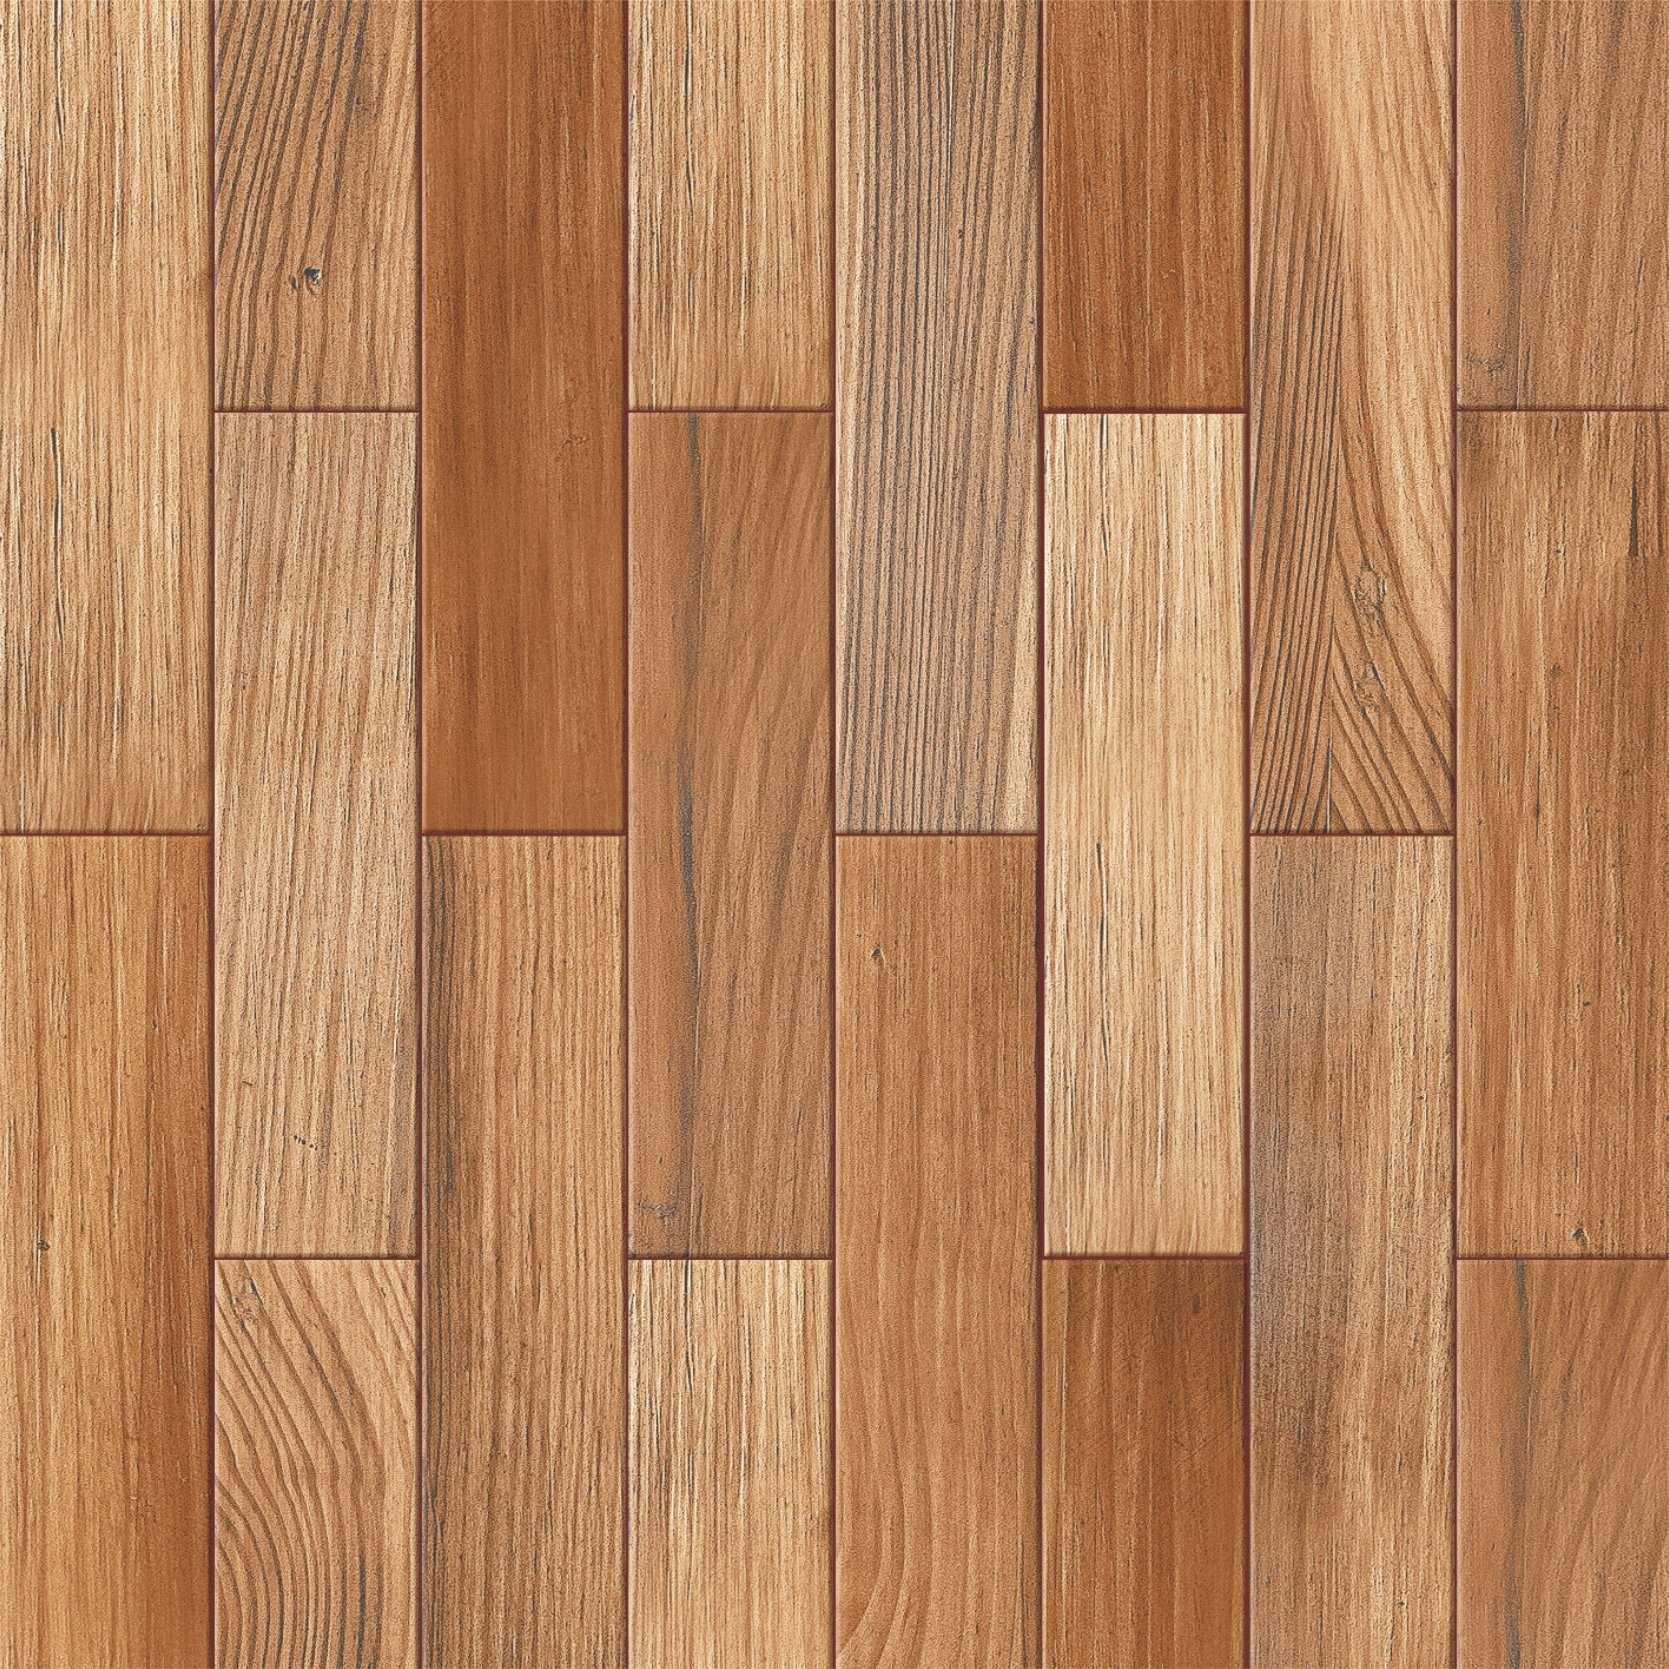 Wooden Tiles 600mmx600mm Wood Floor Tiles 4509 Porcelain Tiles Floor